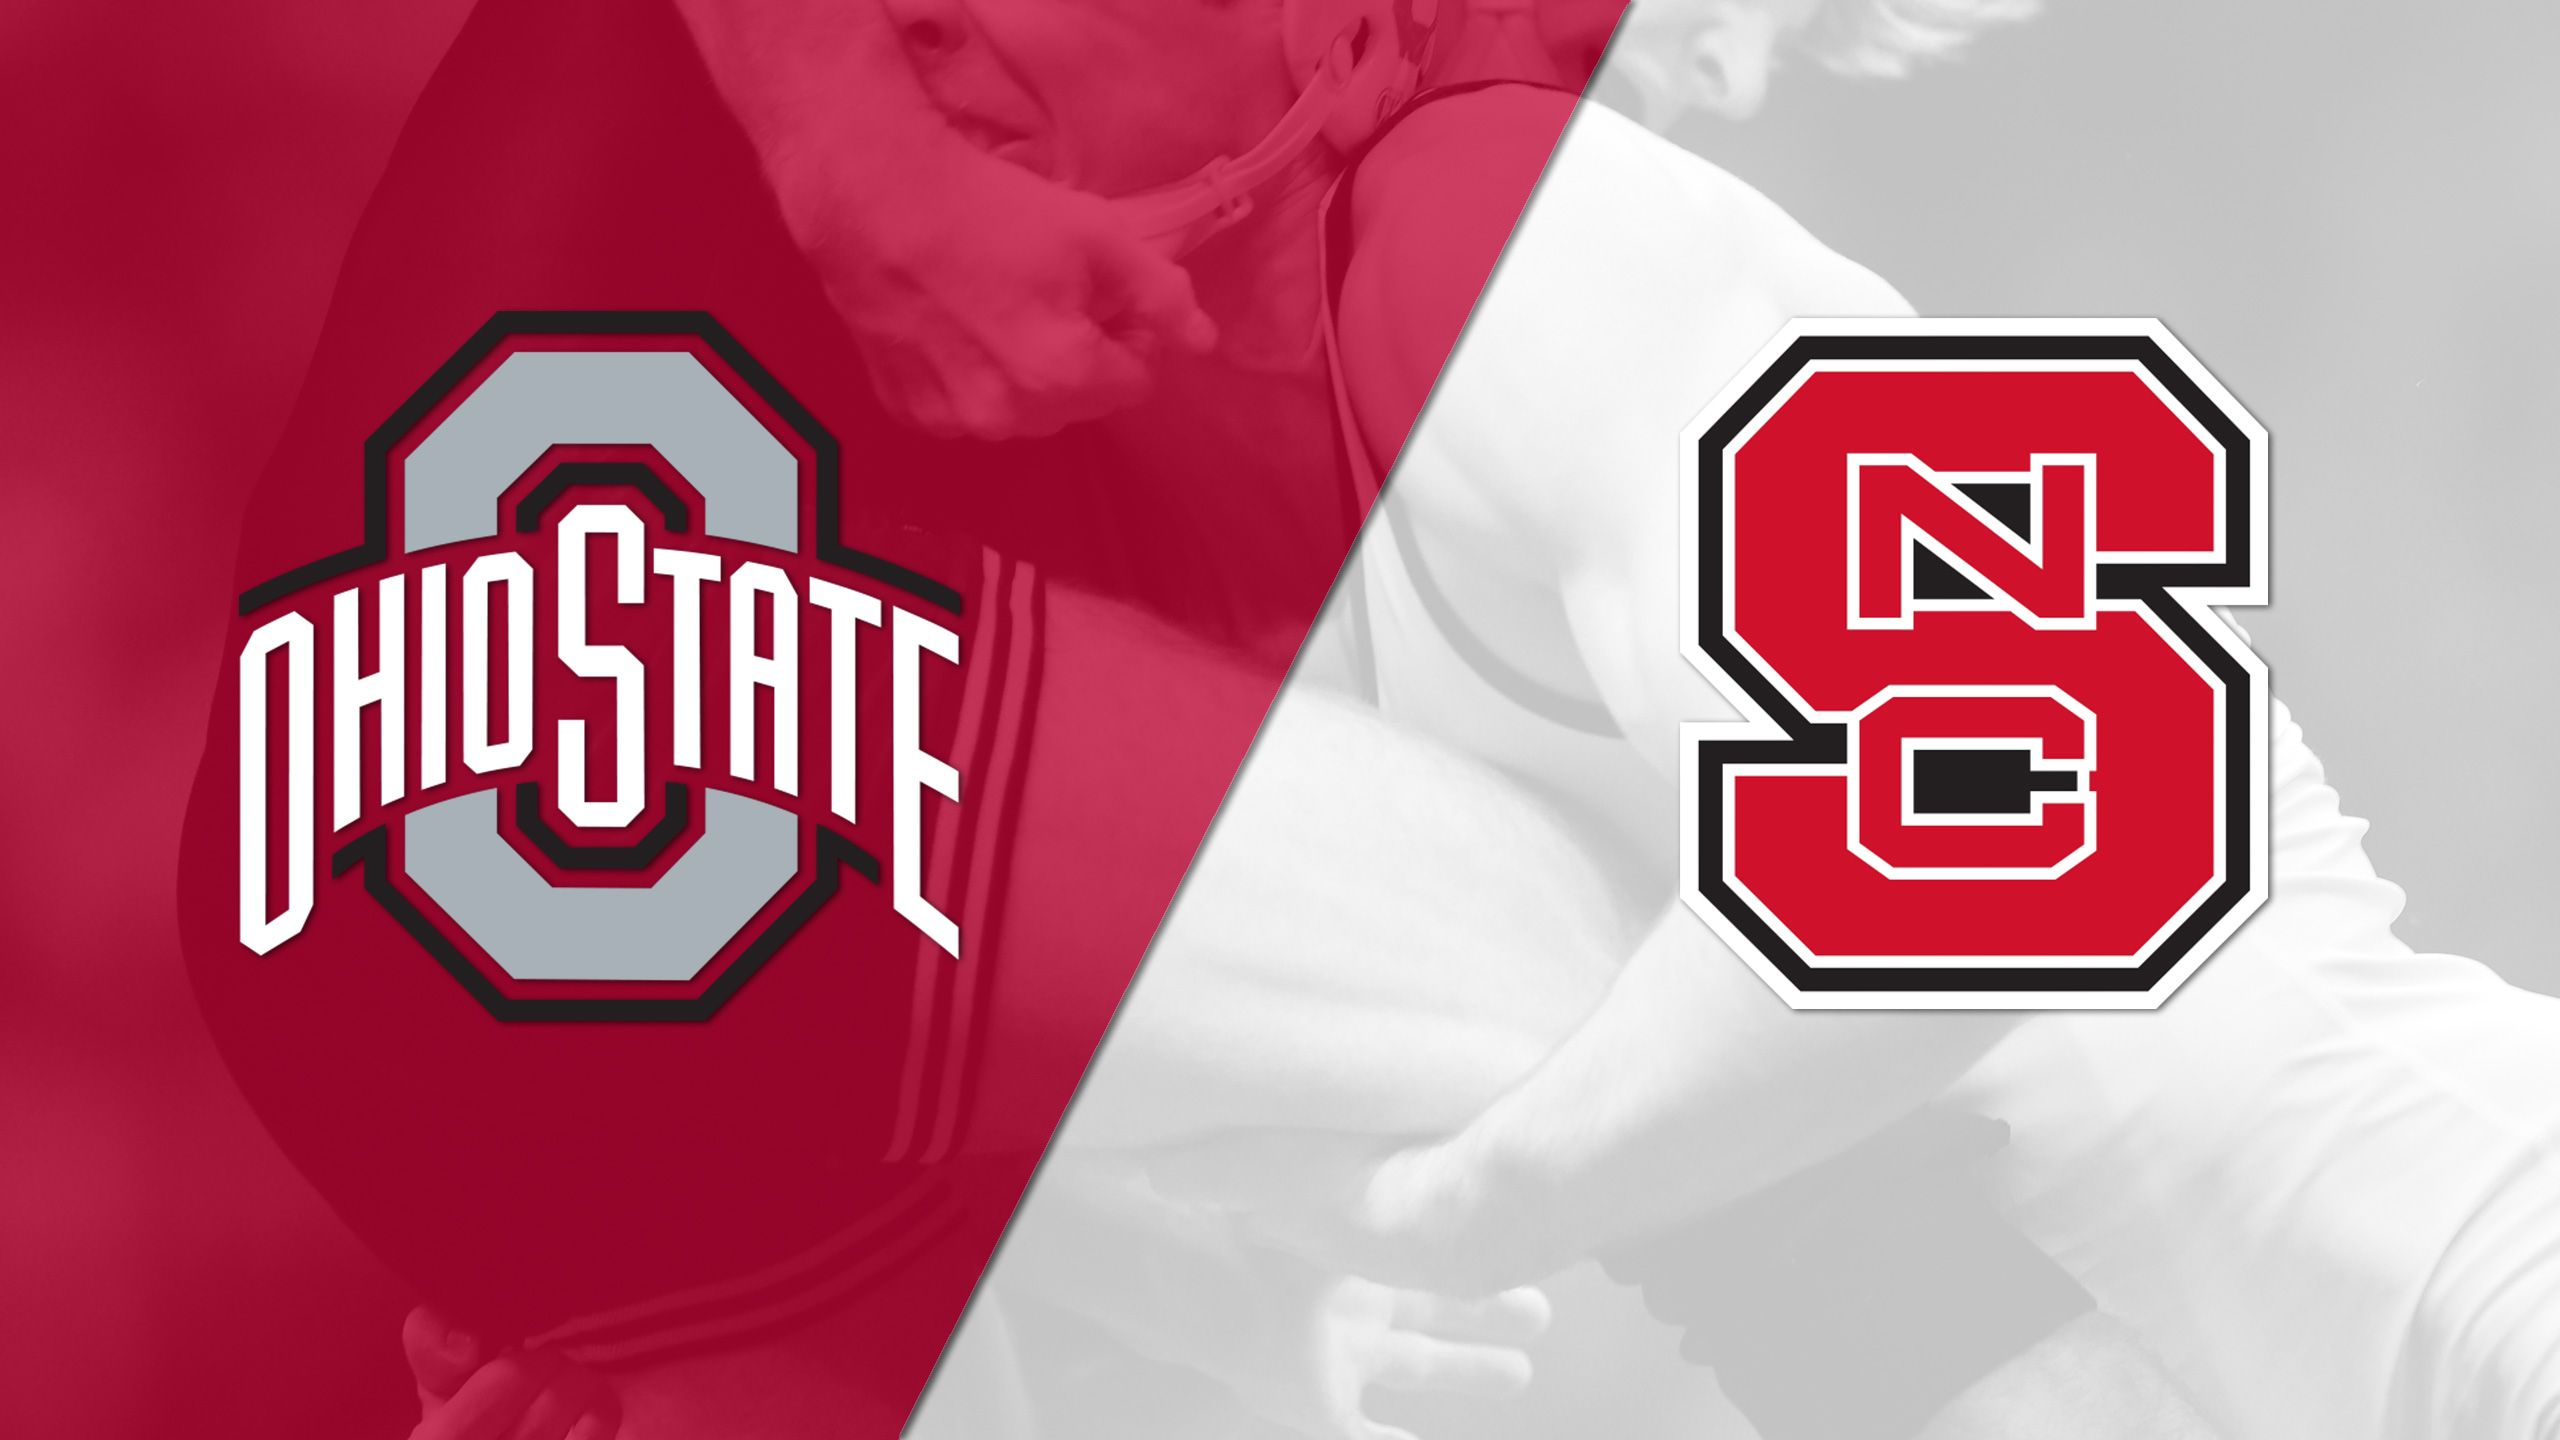 Ohio State vs. NC State (Wrestling)